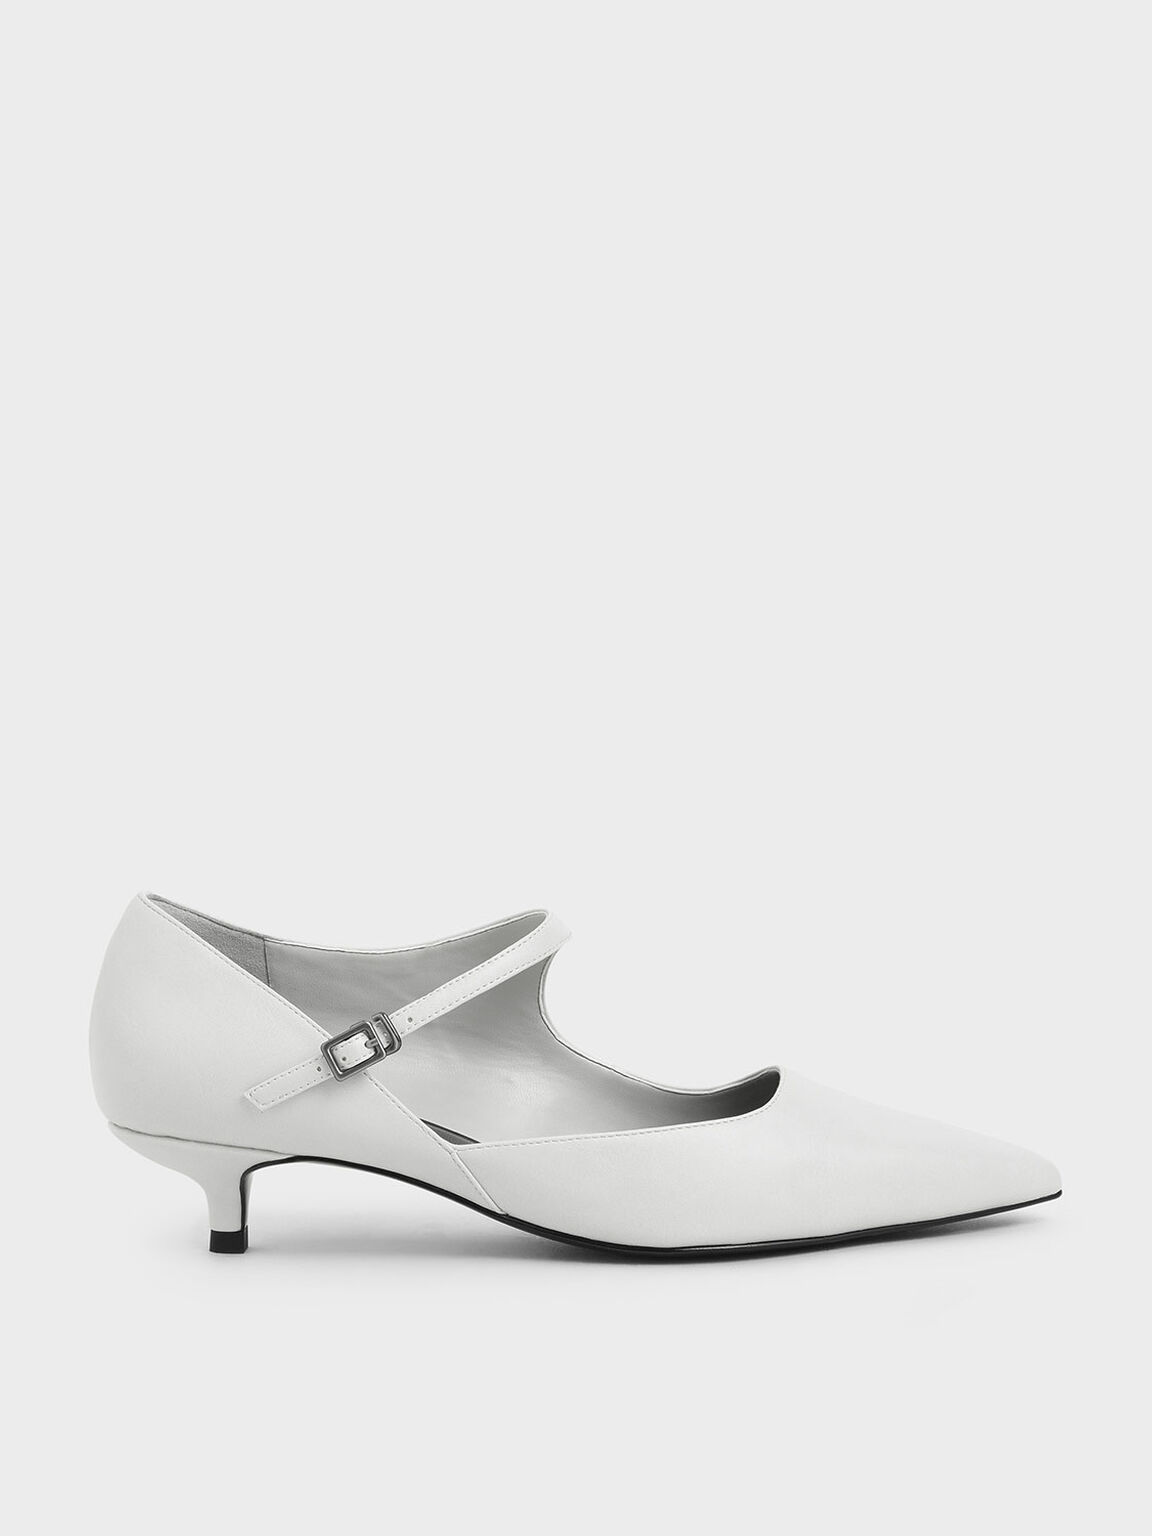 Asymmetric Mary Jane Kitten Heels, White, hi-res